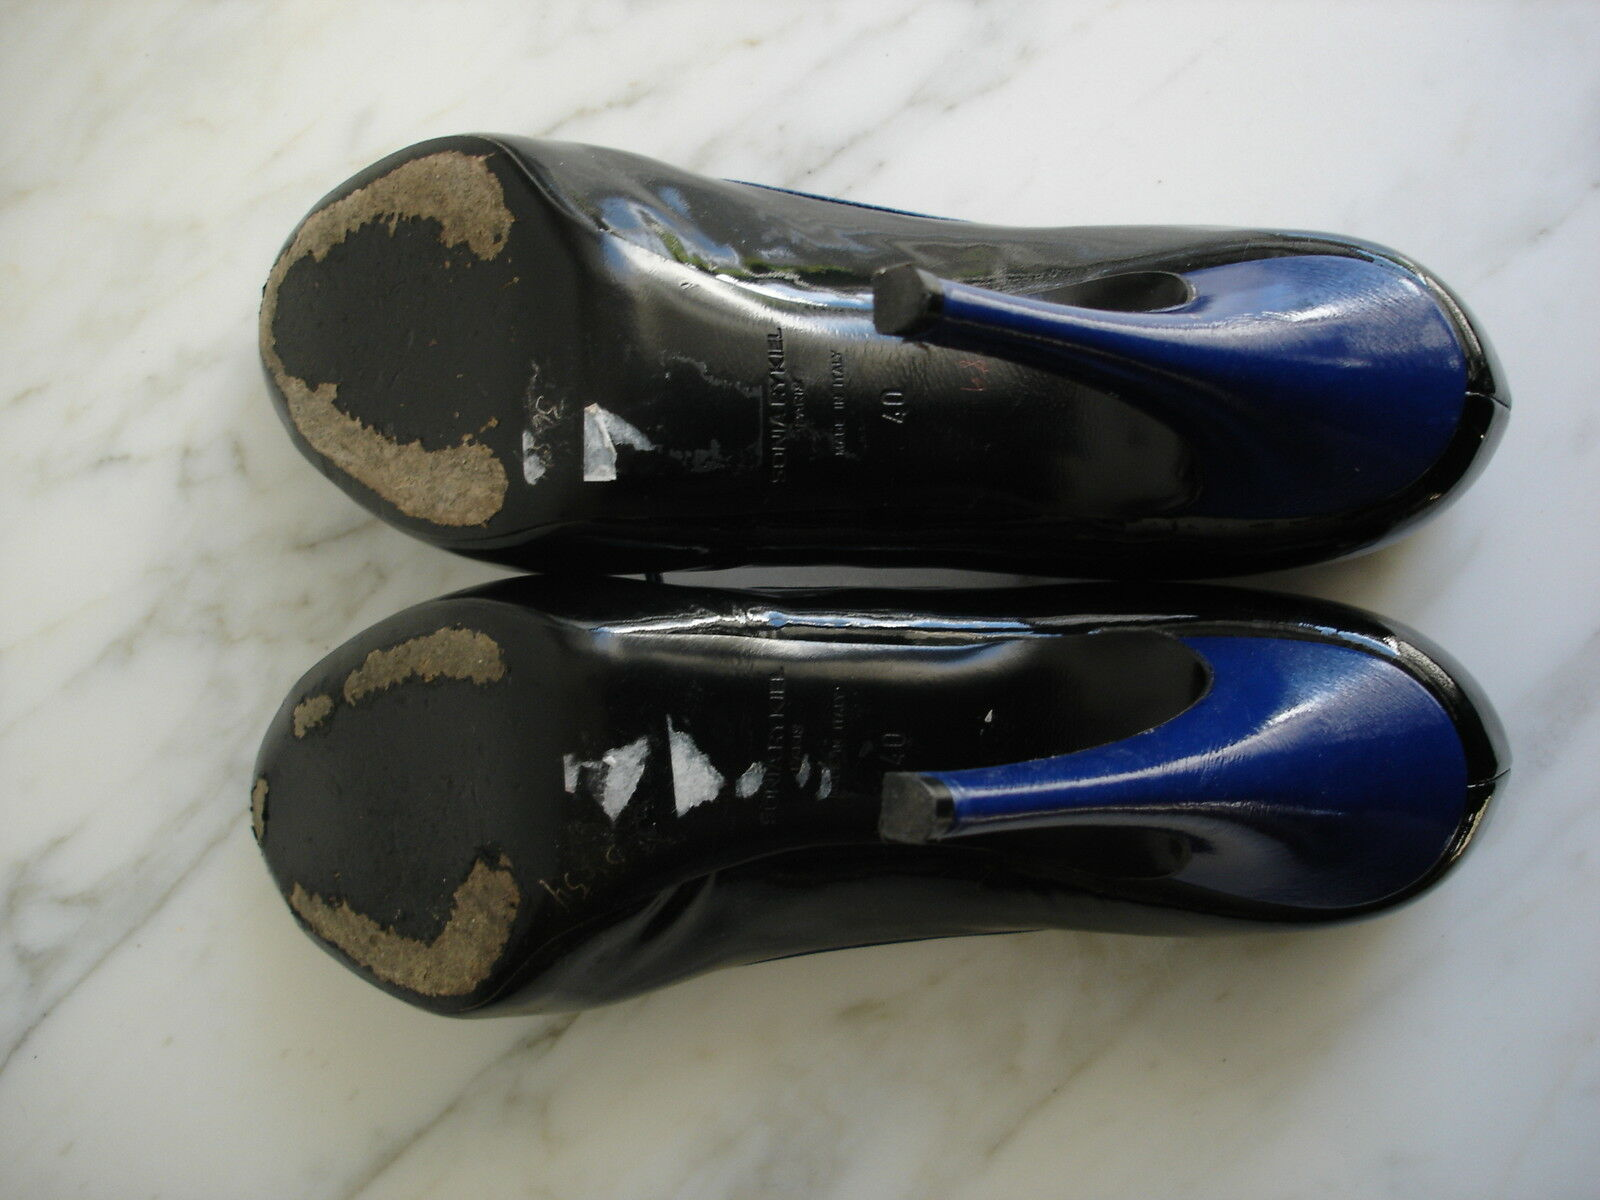 sonia rykiel Blau and schwarz patent high heeled pumps with peep toe